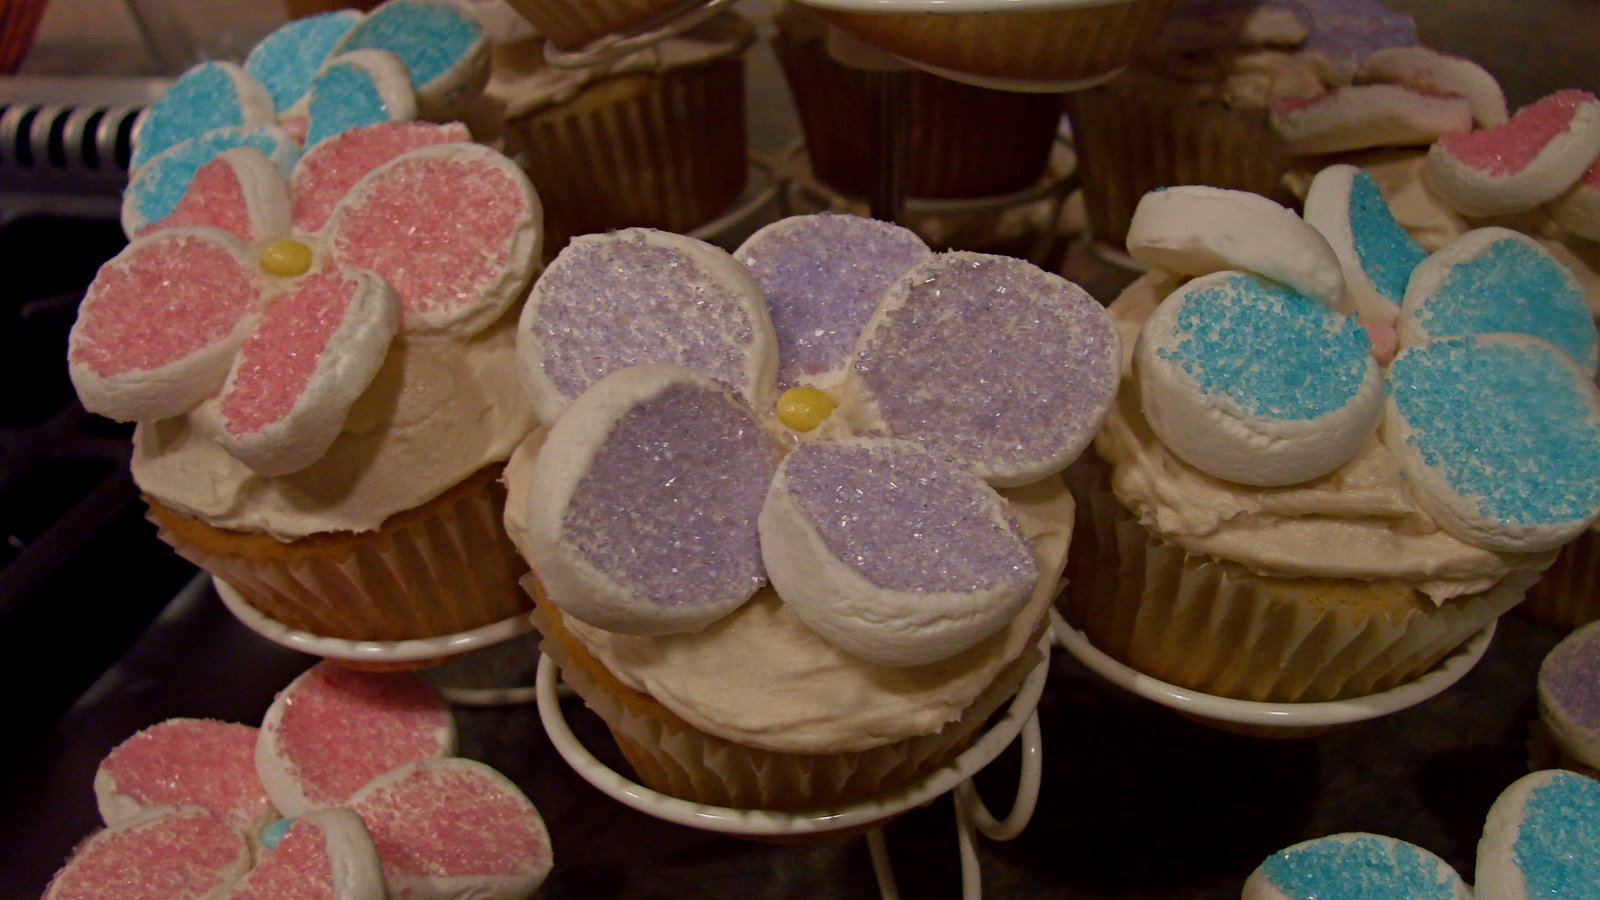 Cupcake Decorating Ideas With Marshmallows : Notions from Nonny: Decorating with Marshmallows